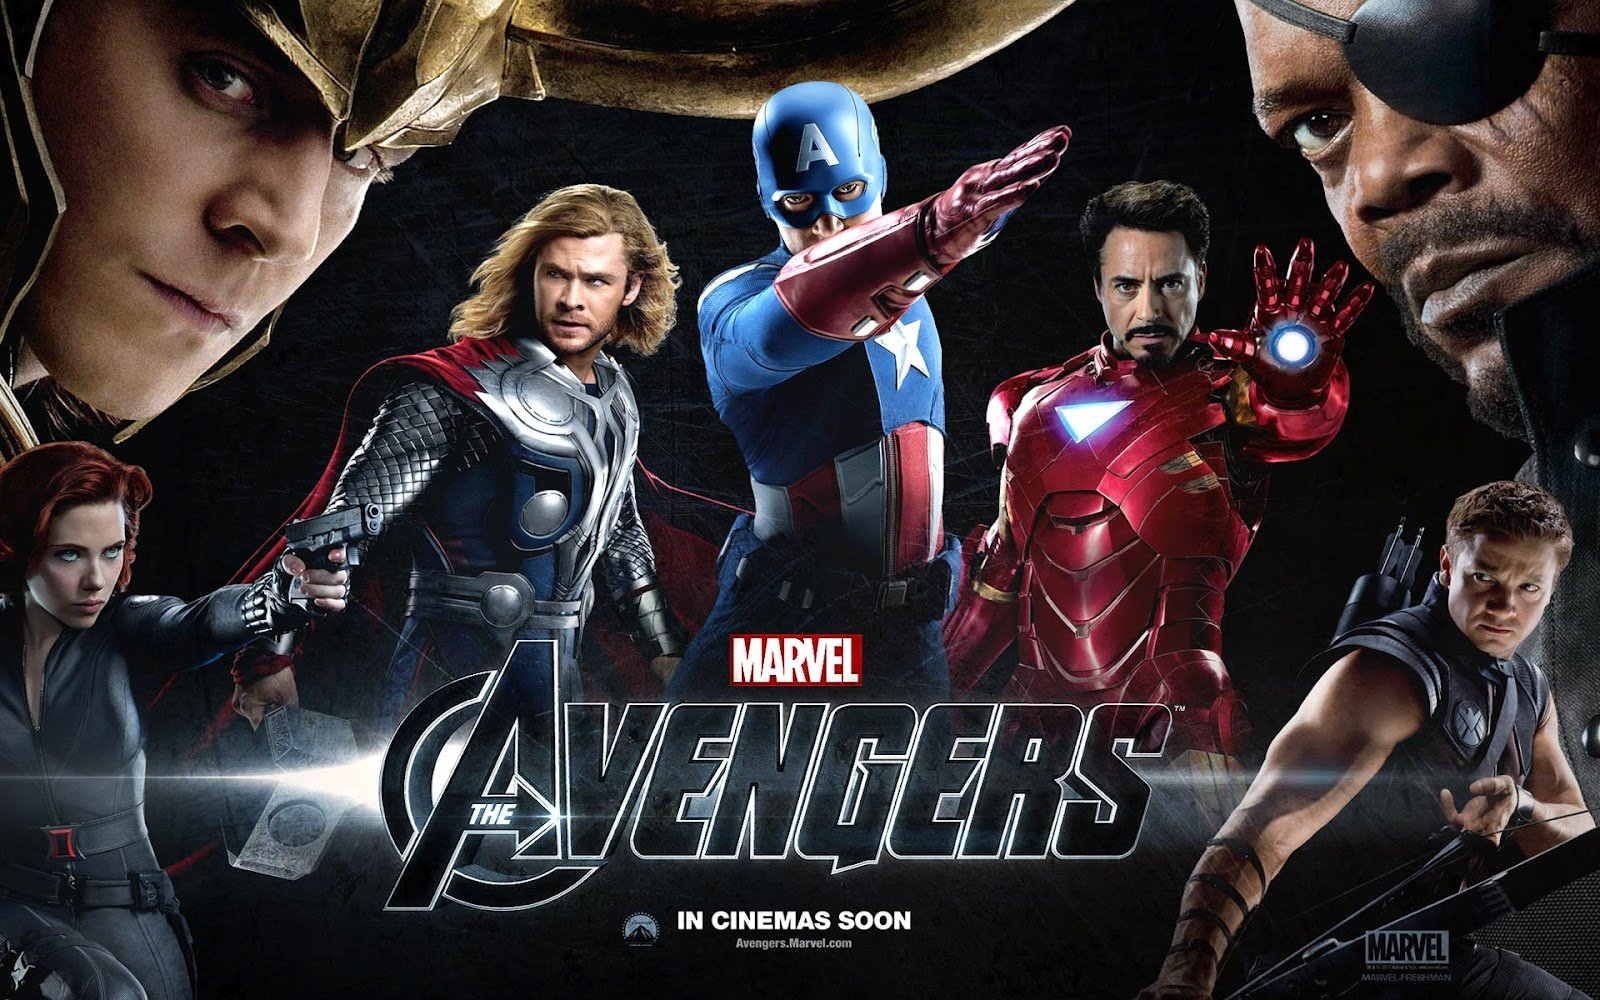 The-Avengers-Characters-1920x1200-Wallpaper